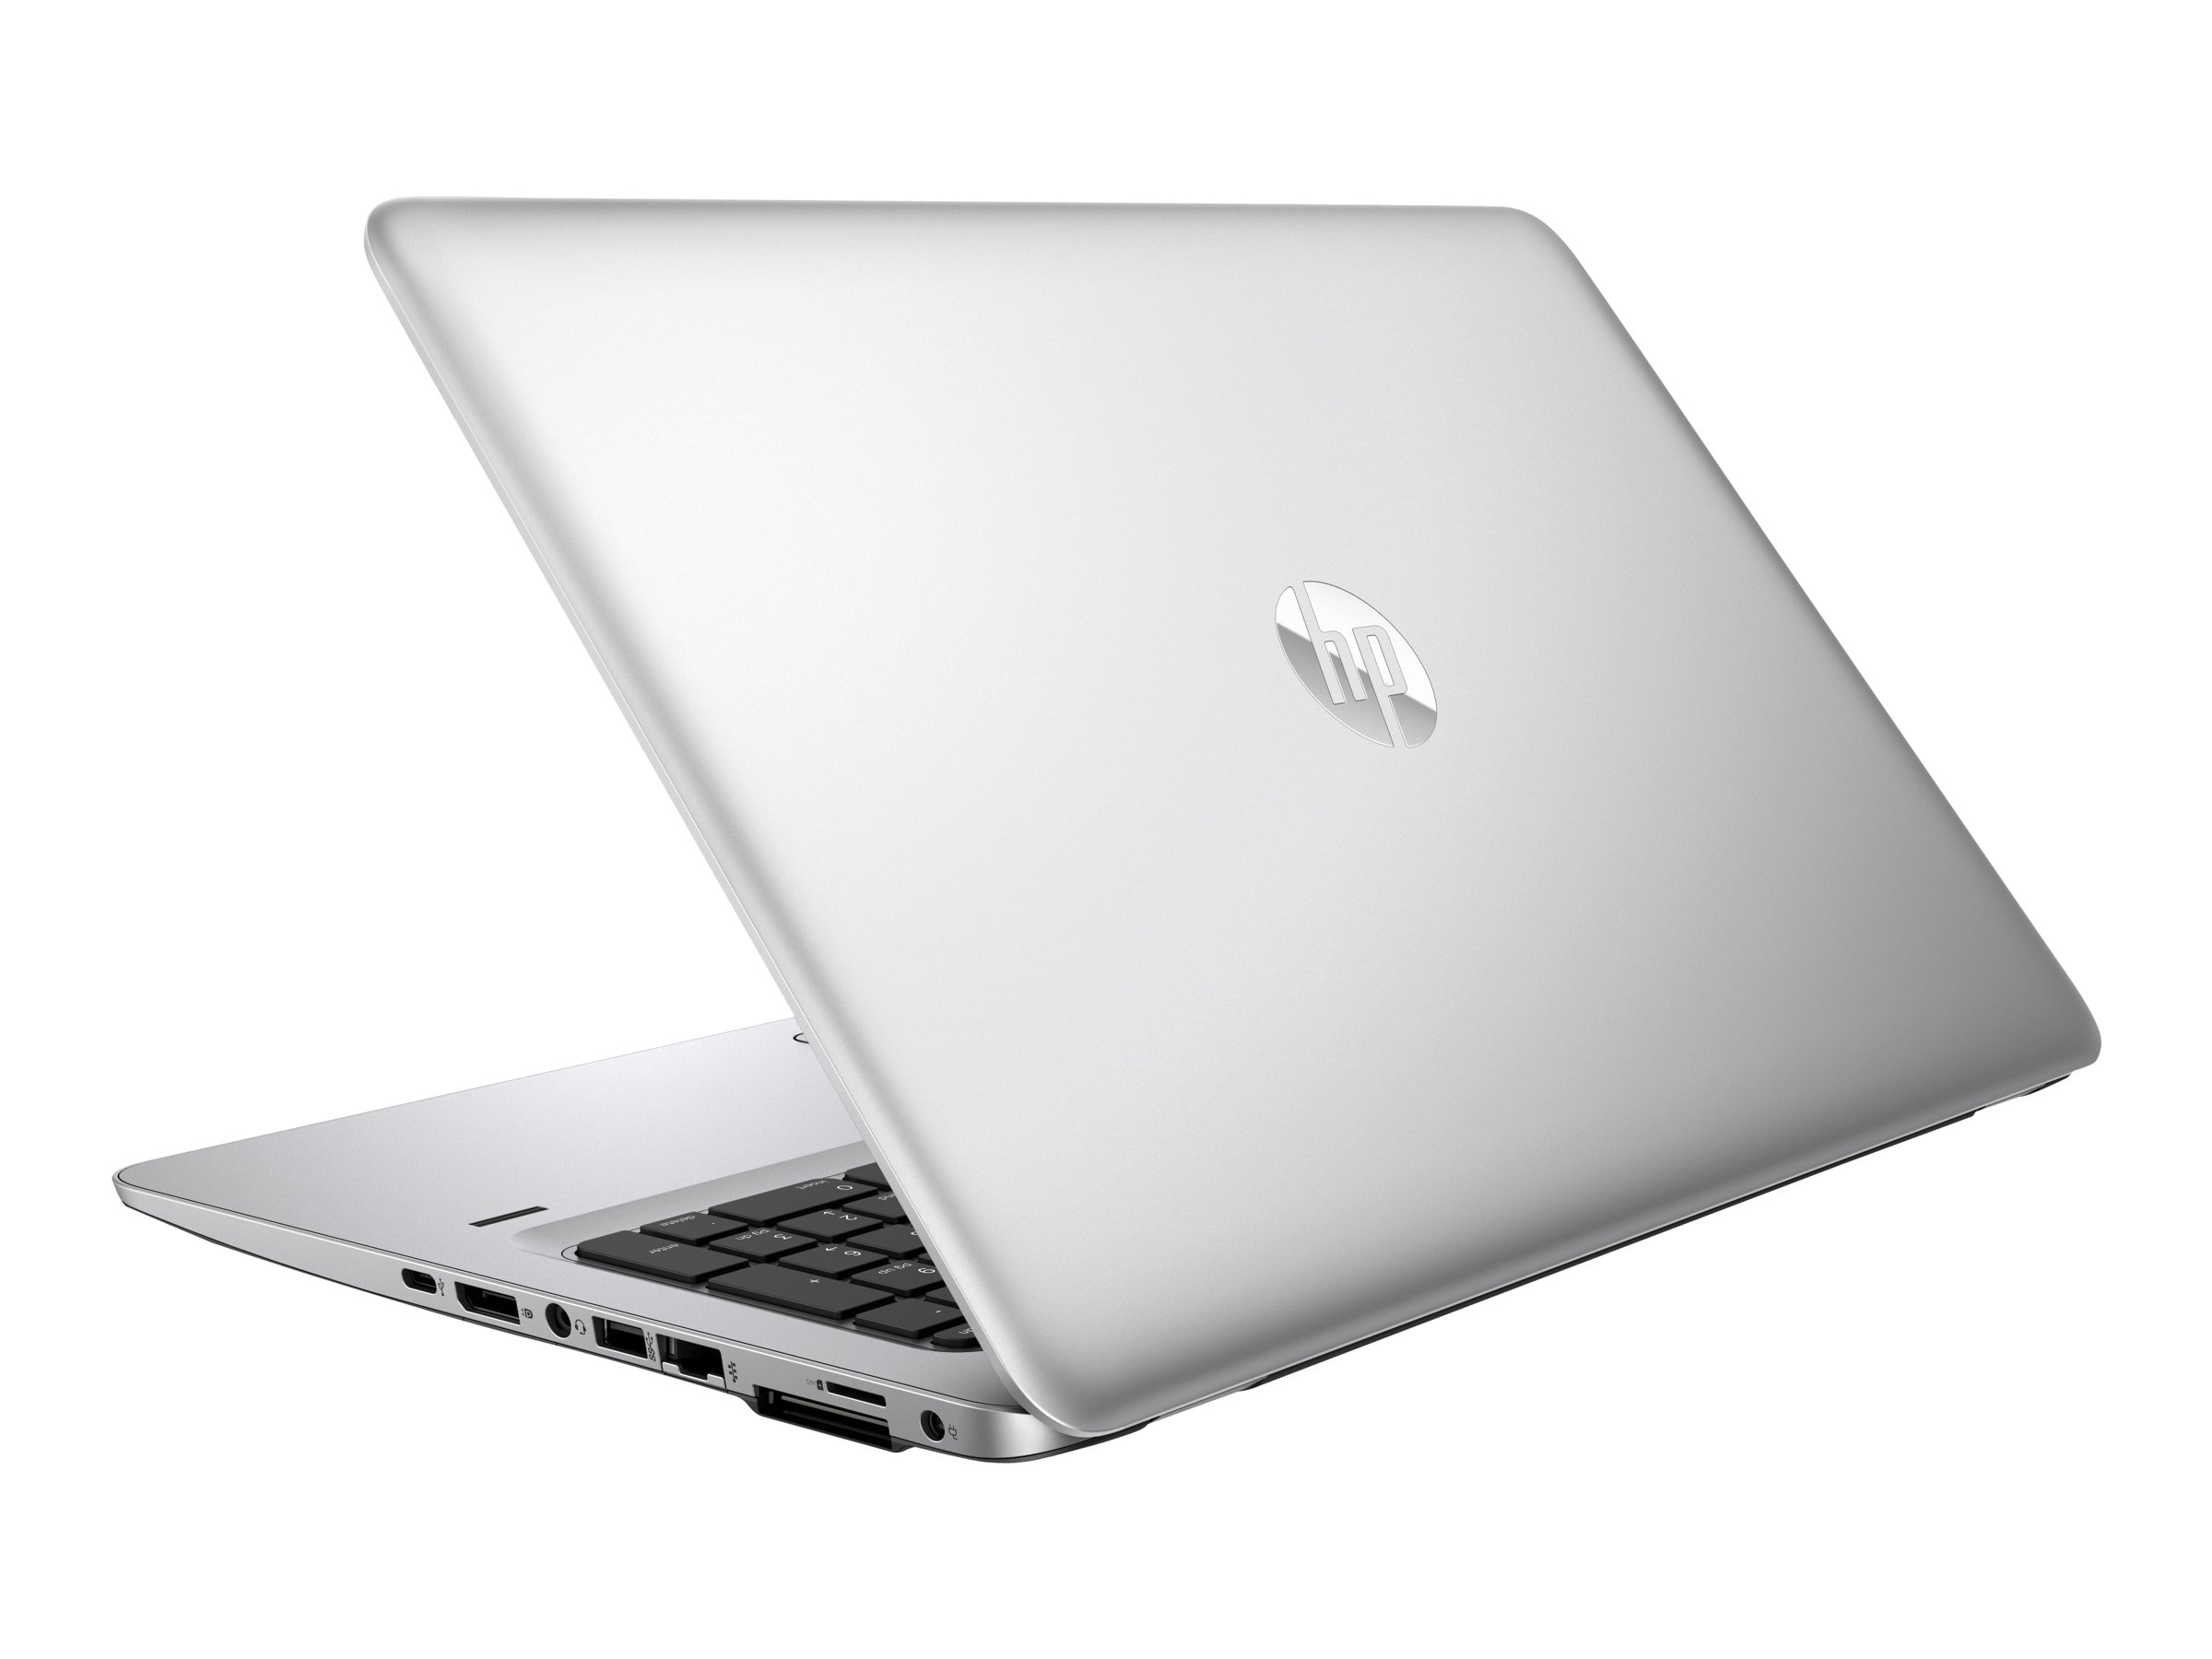 HP EliteBook 850 G3 2.6GHz Core i7 15.6in display, V1P45UA#ABA